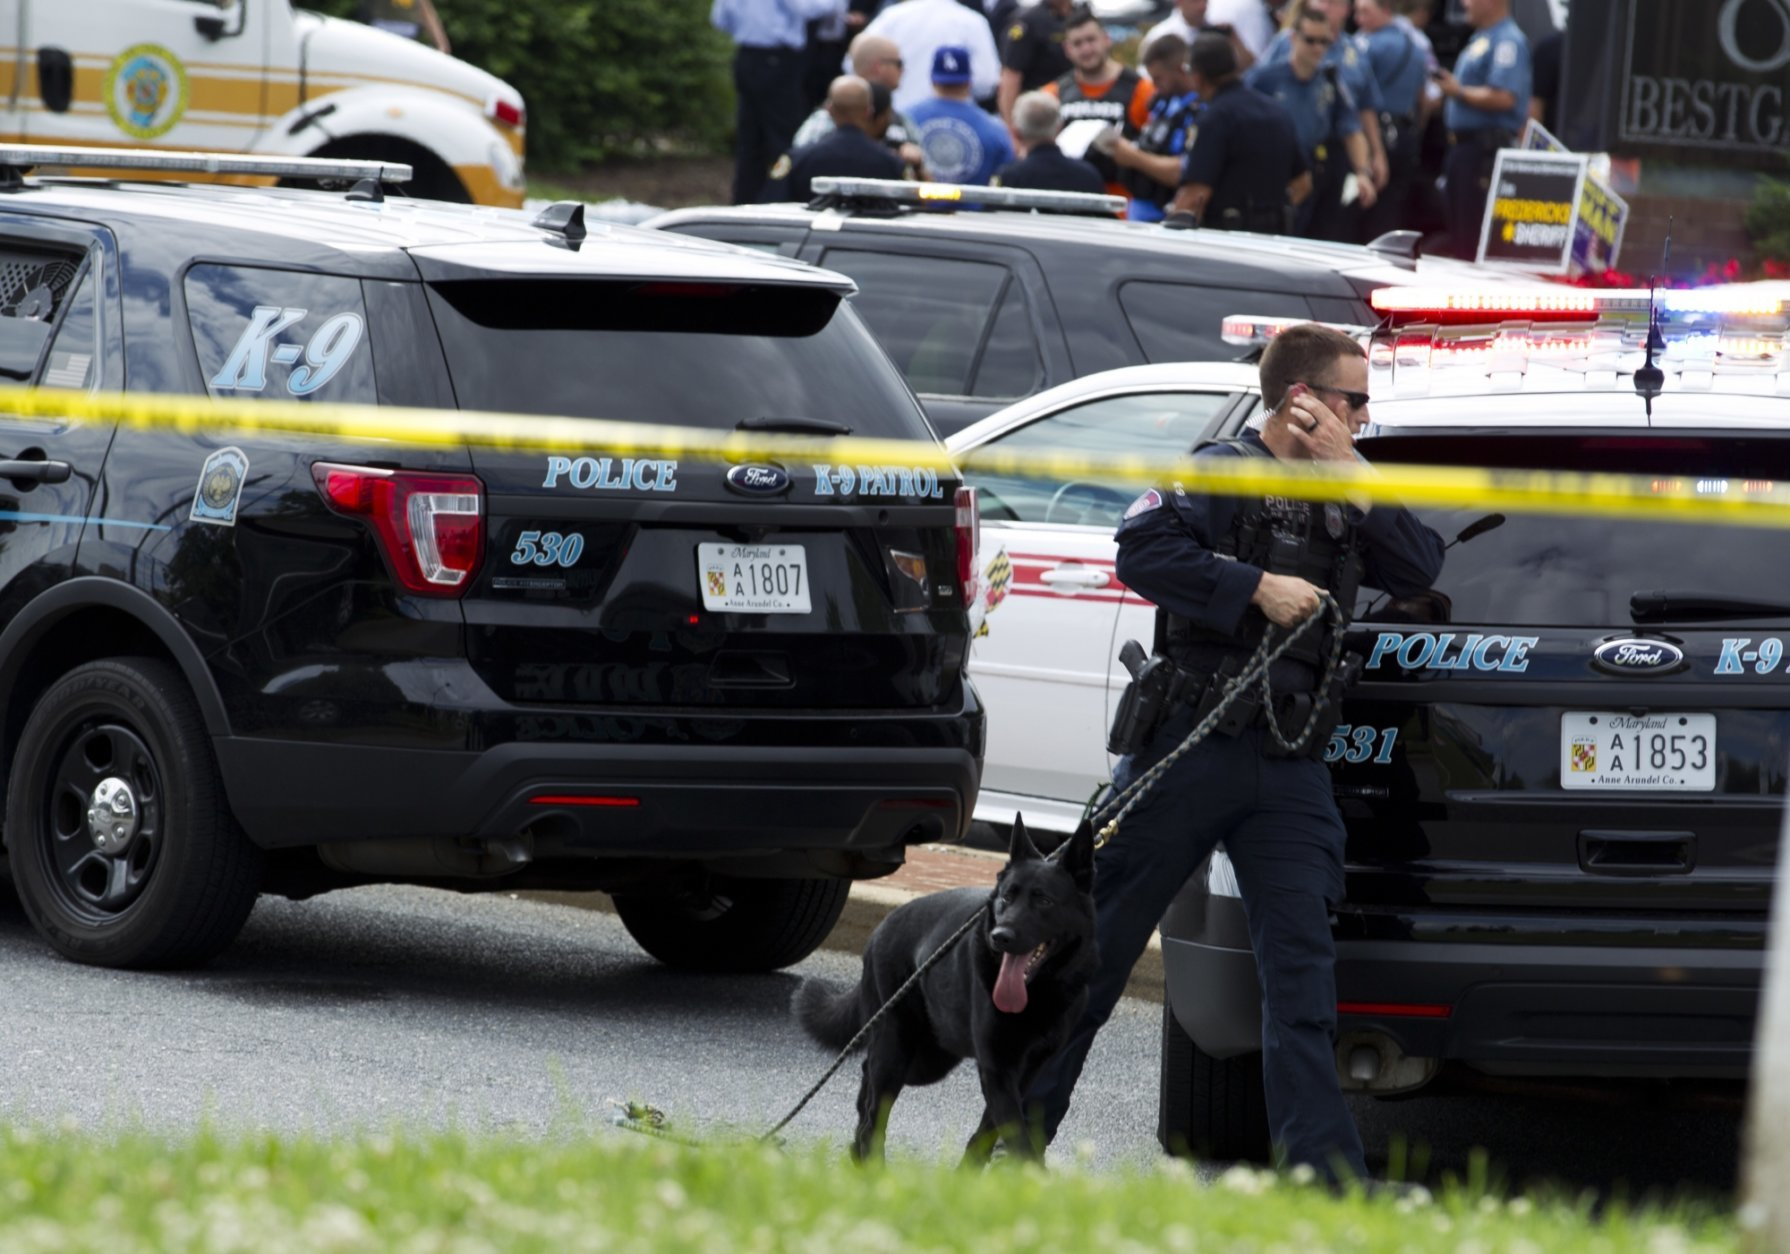 A K-9 police unit works the scene after multiple people were shot at a newspaper office building in Annapolis, Md., Thursday, June 28, 2018. (AP Photo/Jose Luis Magana)